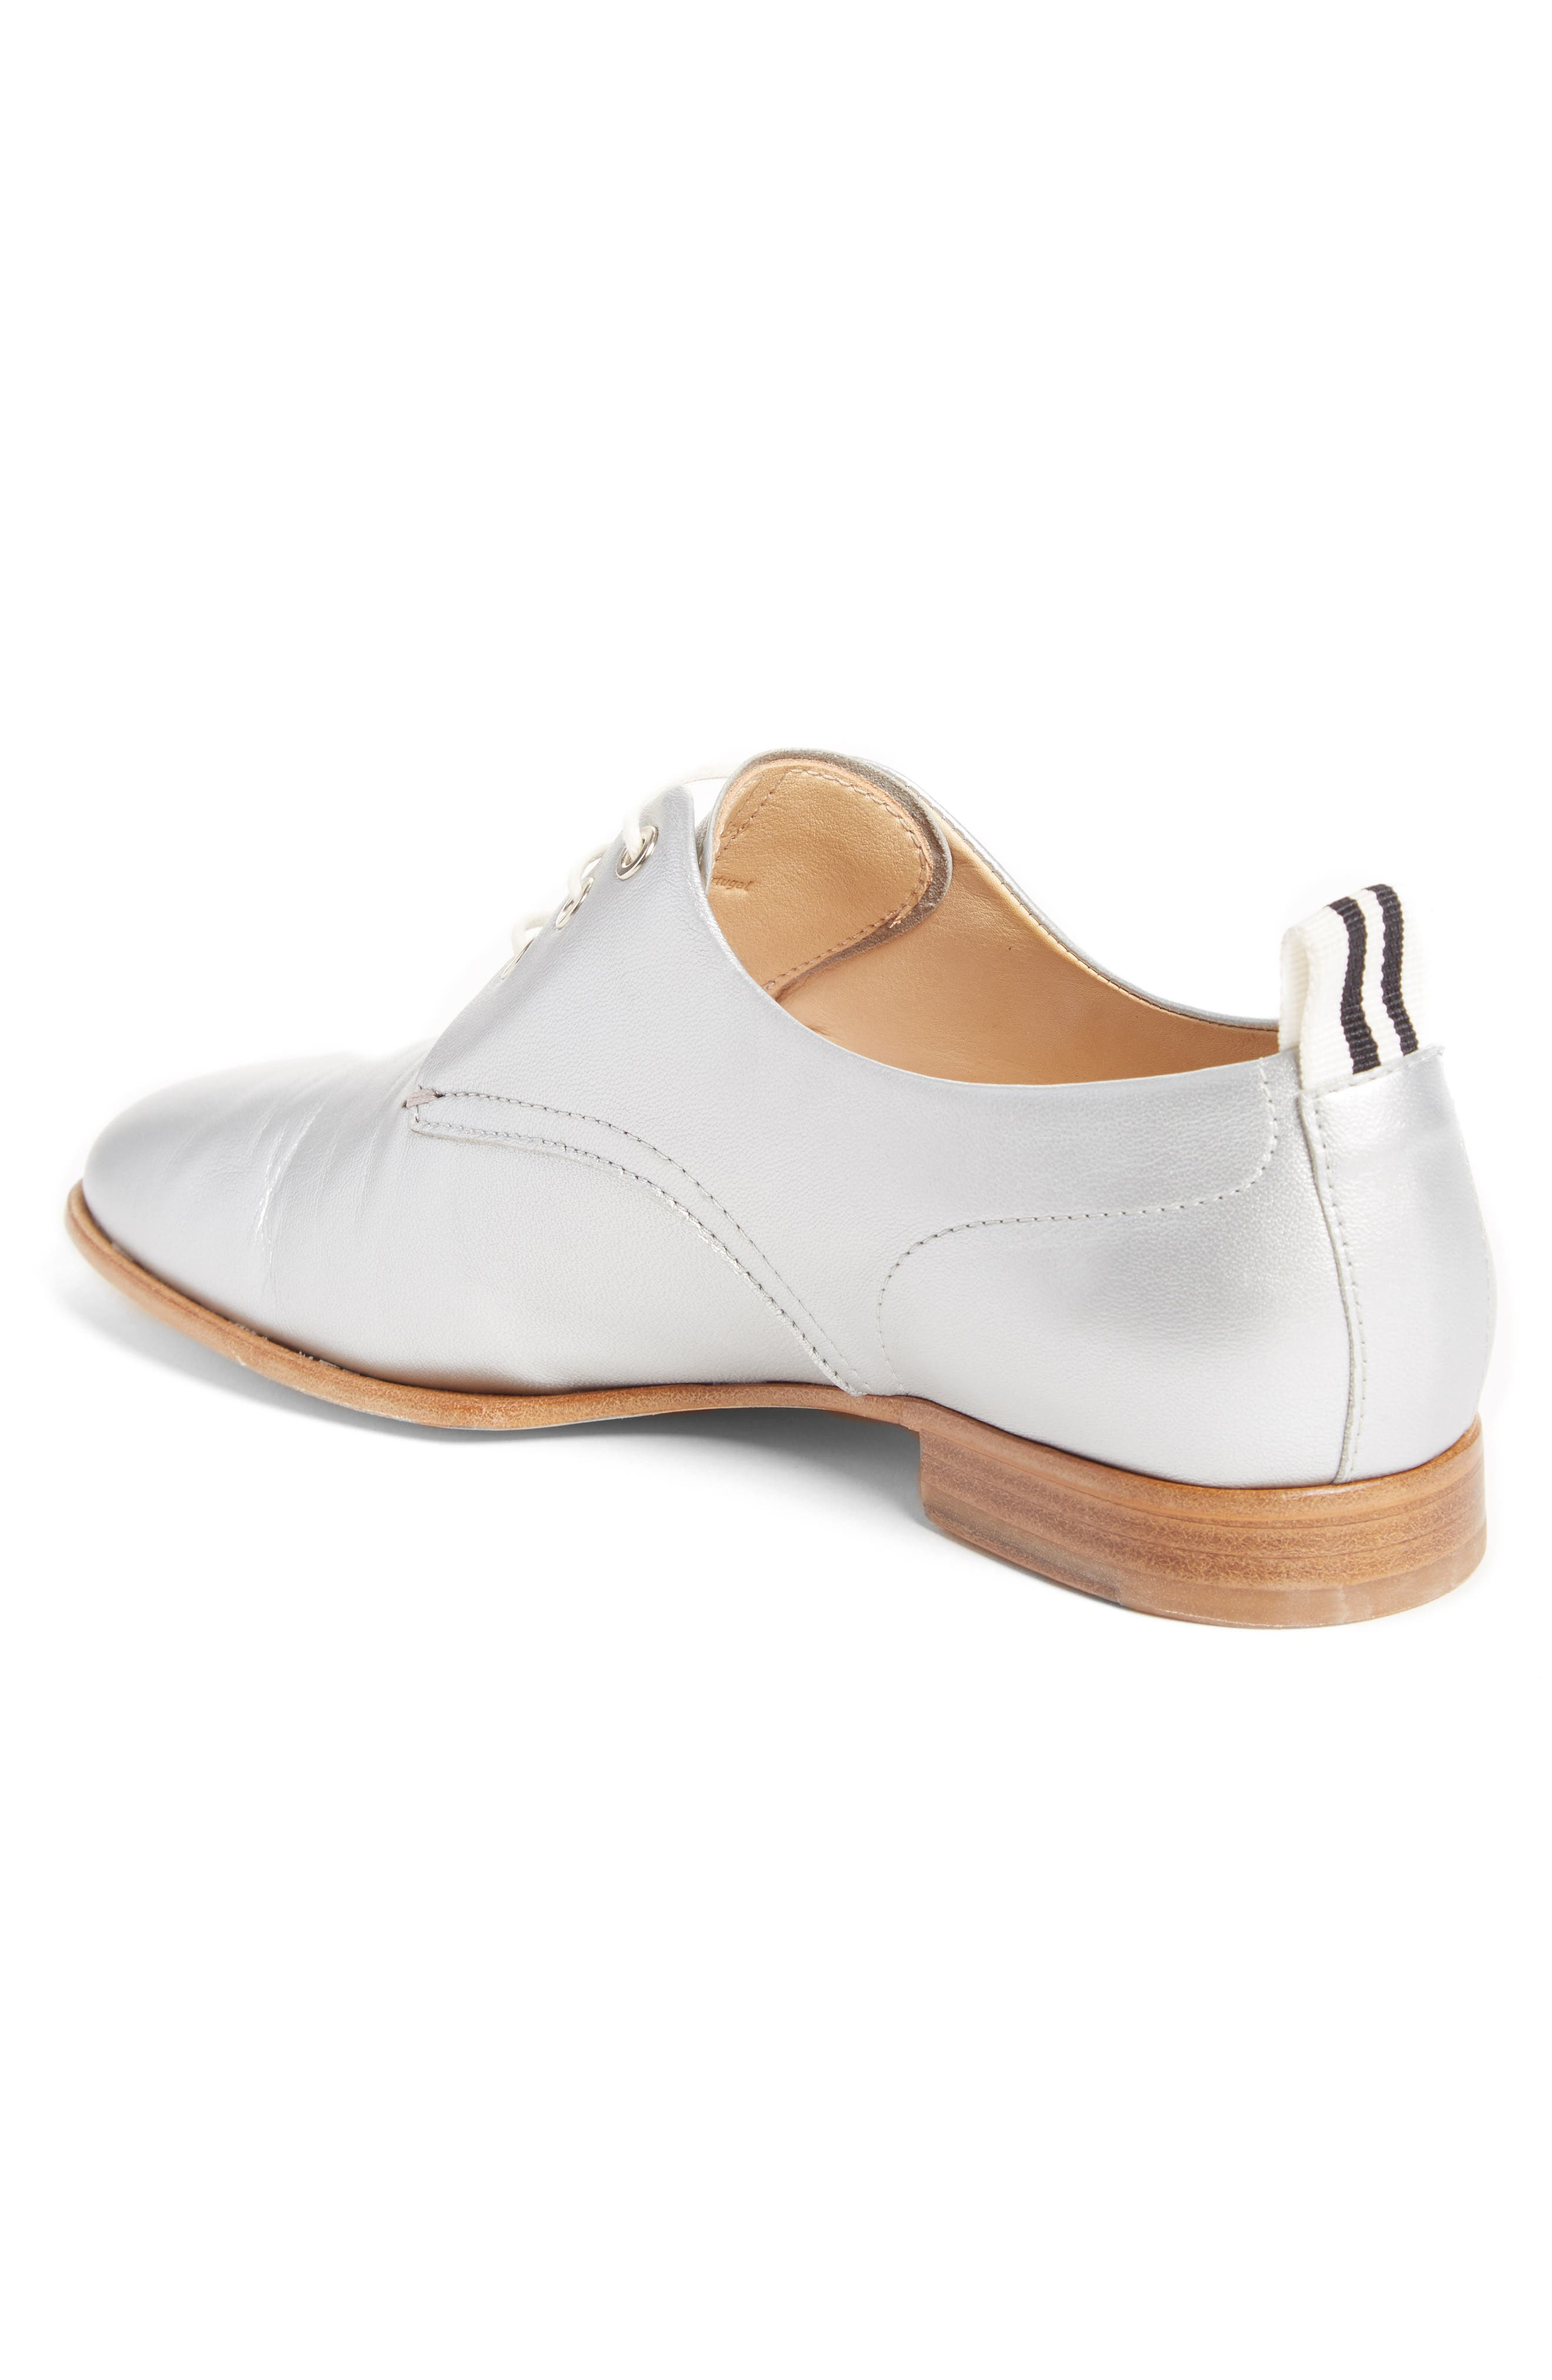 Alternate Image 2  - rag & bone Audrey Oxford (Women)